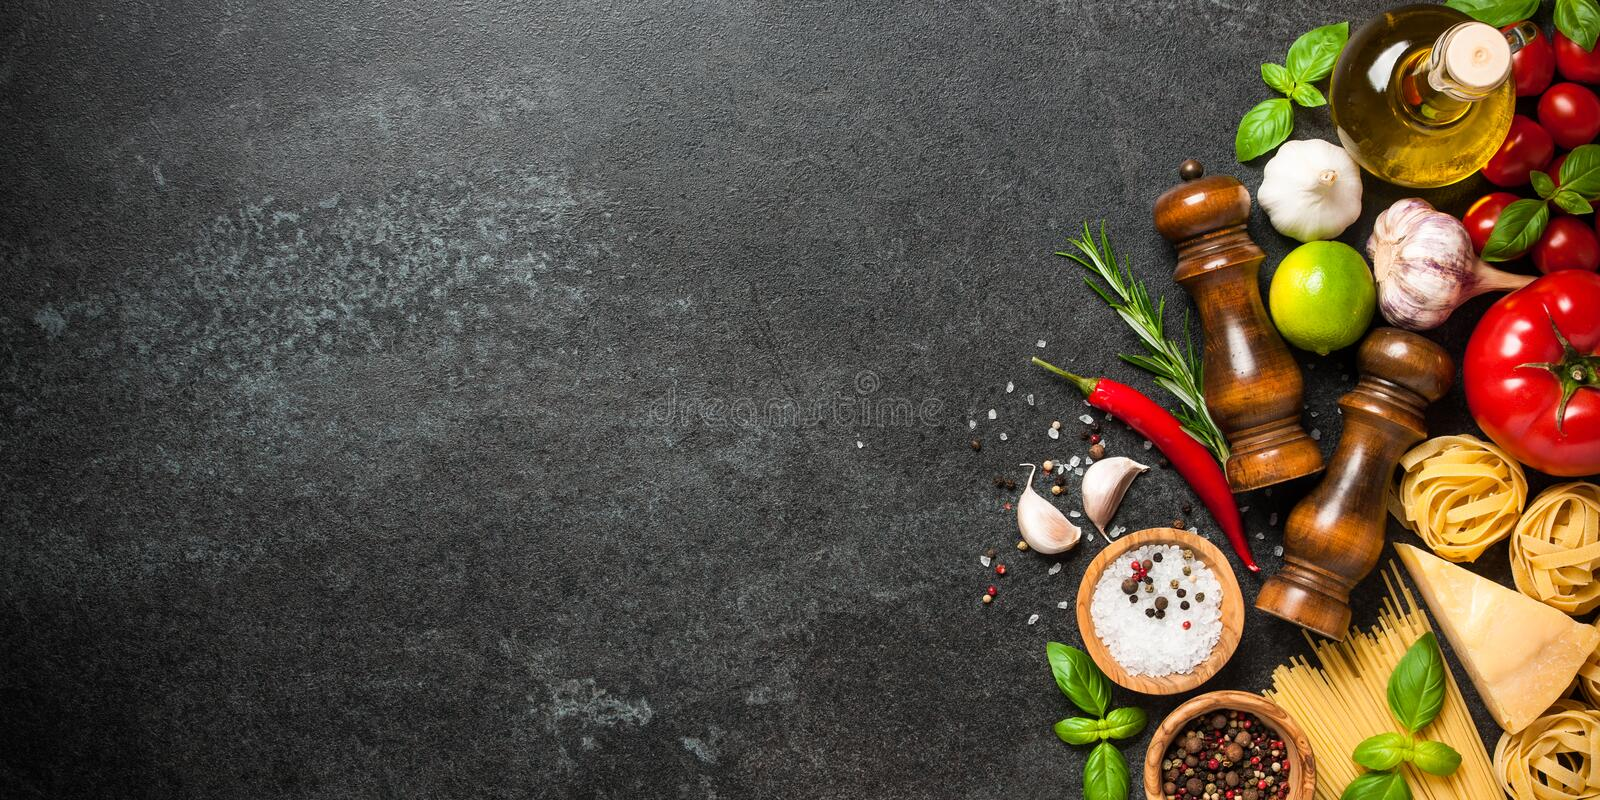 Cooking table with ingredients. Italian cuisine concept royalty free stock photography